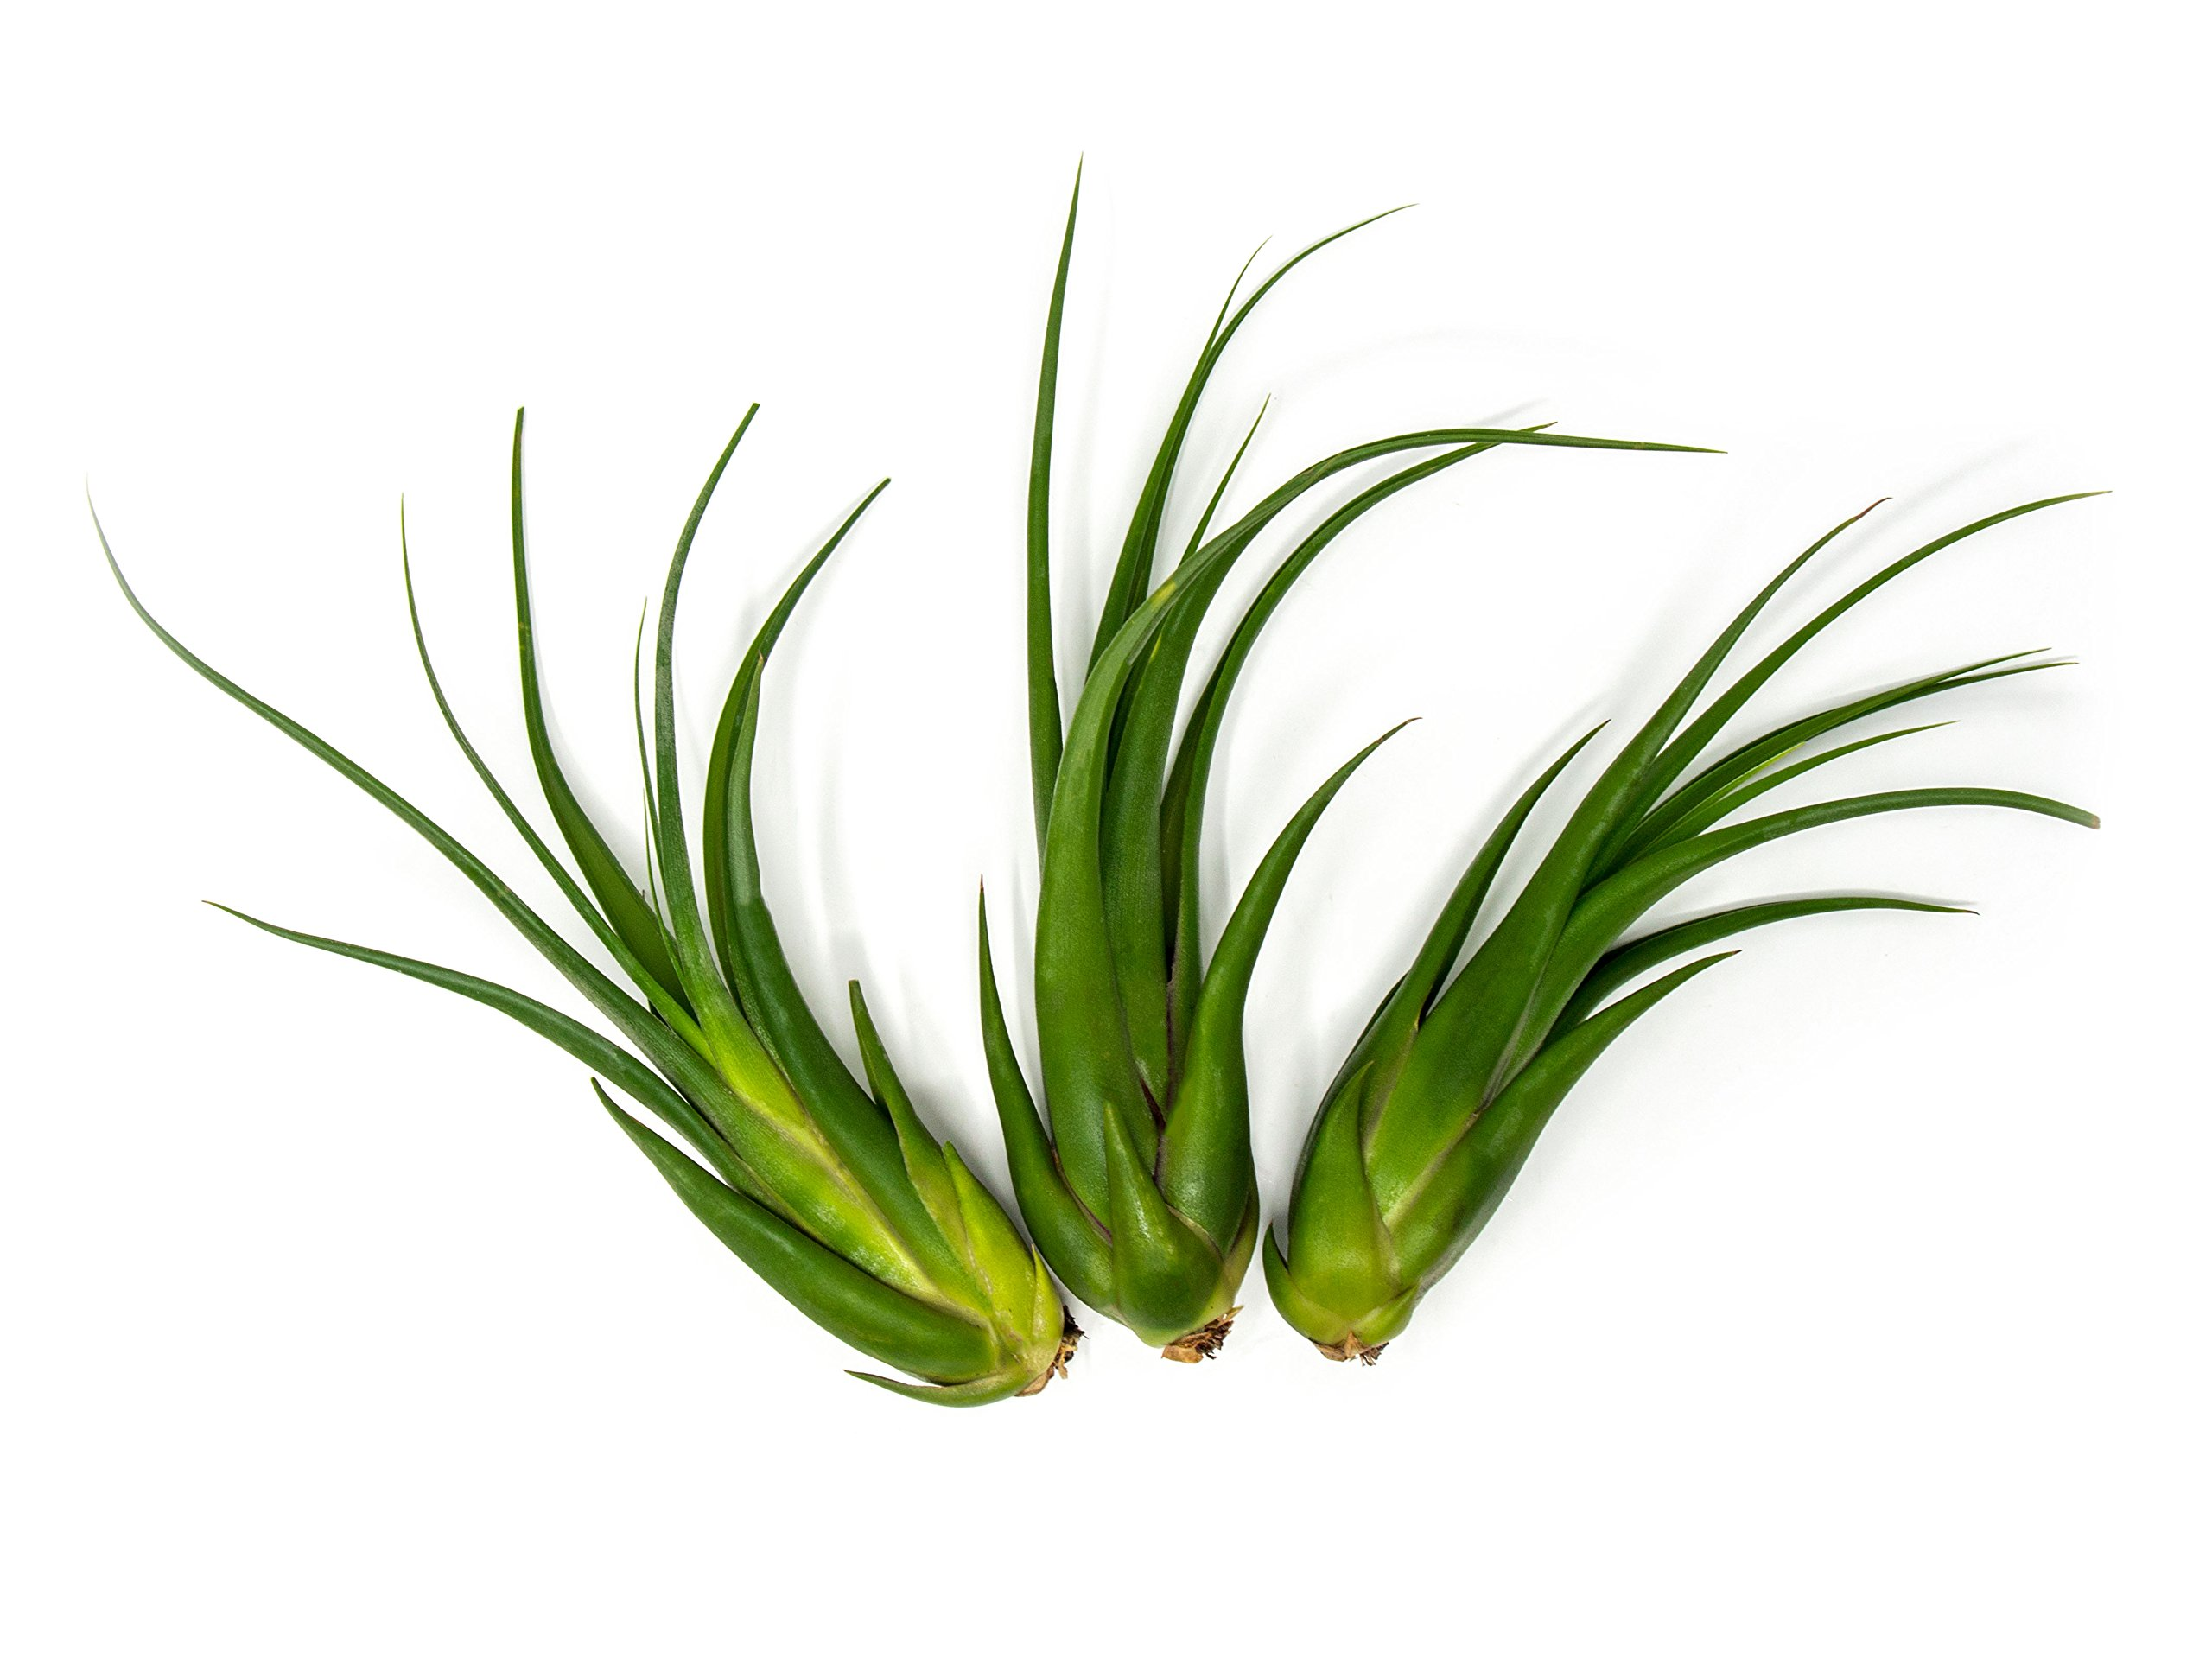 12 GIANT Circinata Air Plants - 7 to 9 inch Tillandsia - Live House Plants for Sale - Indoor Terrarium Air Plants by Plants for Pets